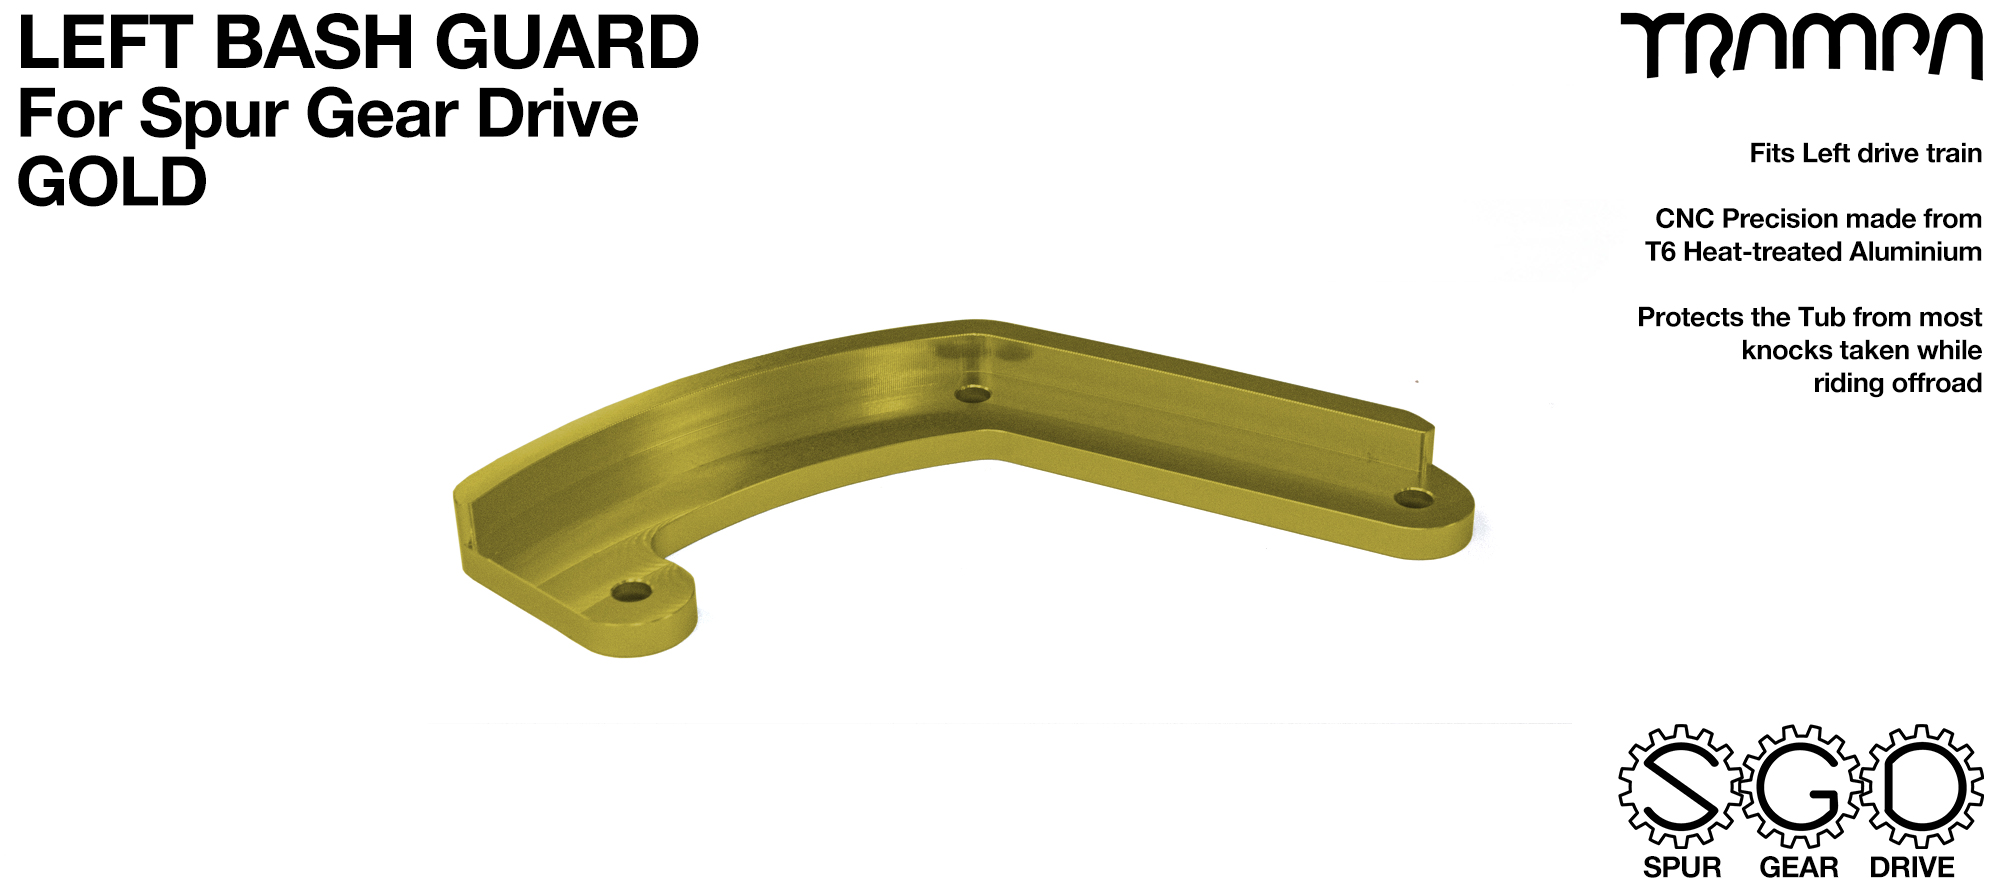 SPUR Gear Drive Bash Guard - LEFT Side - GOLD